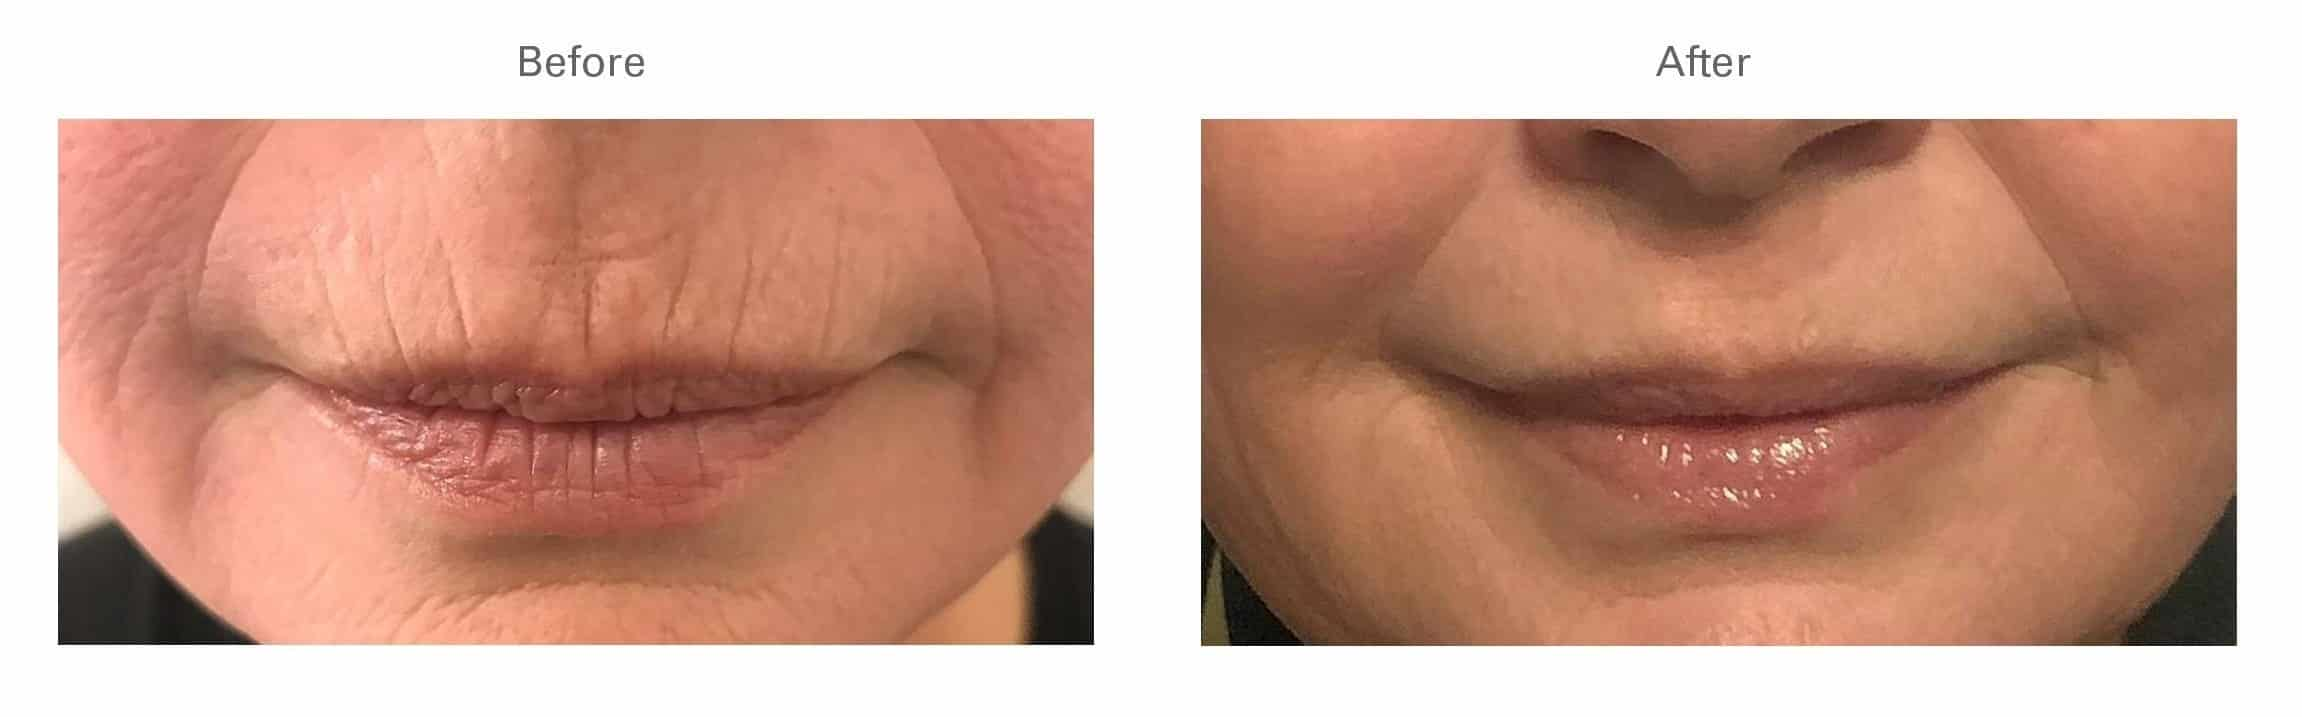 Botox® for Lip Lines